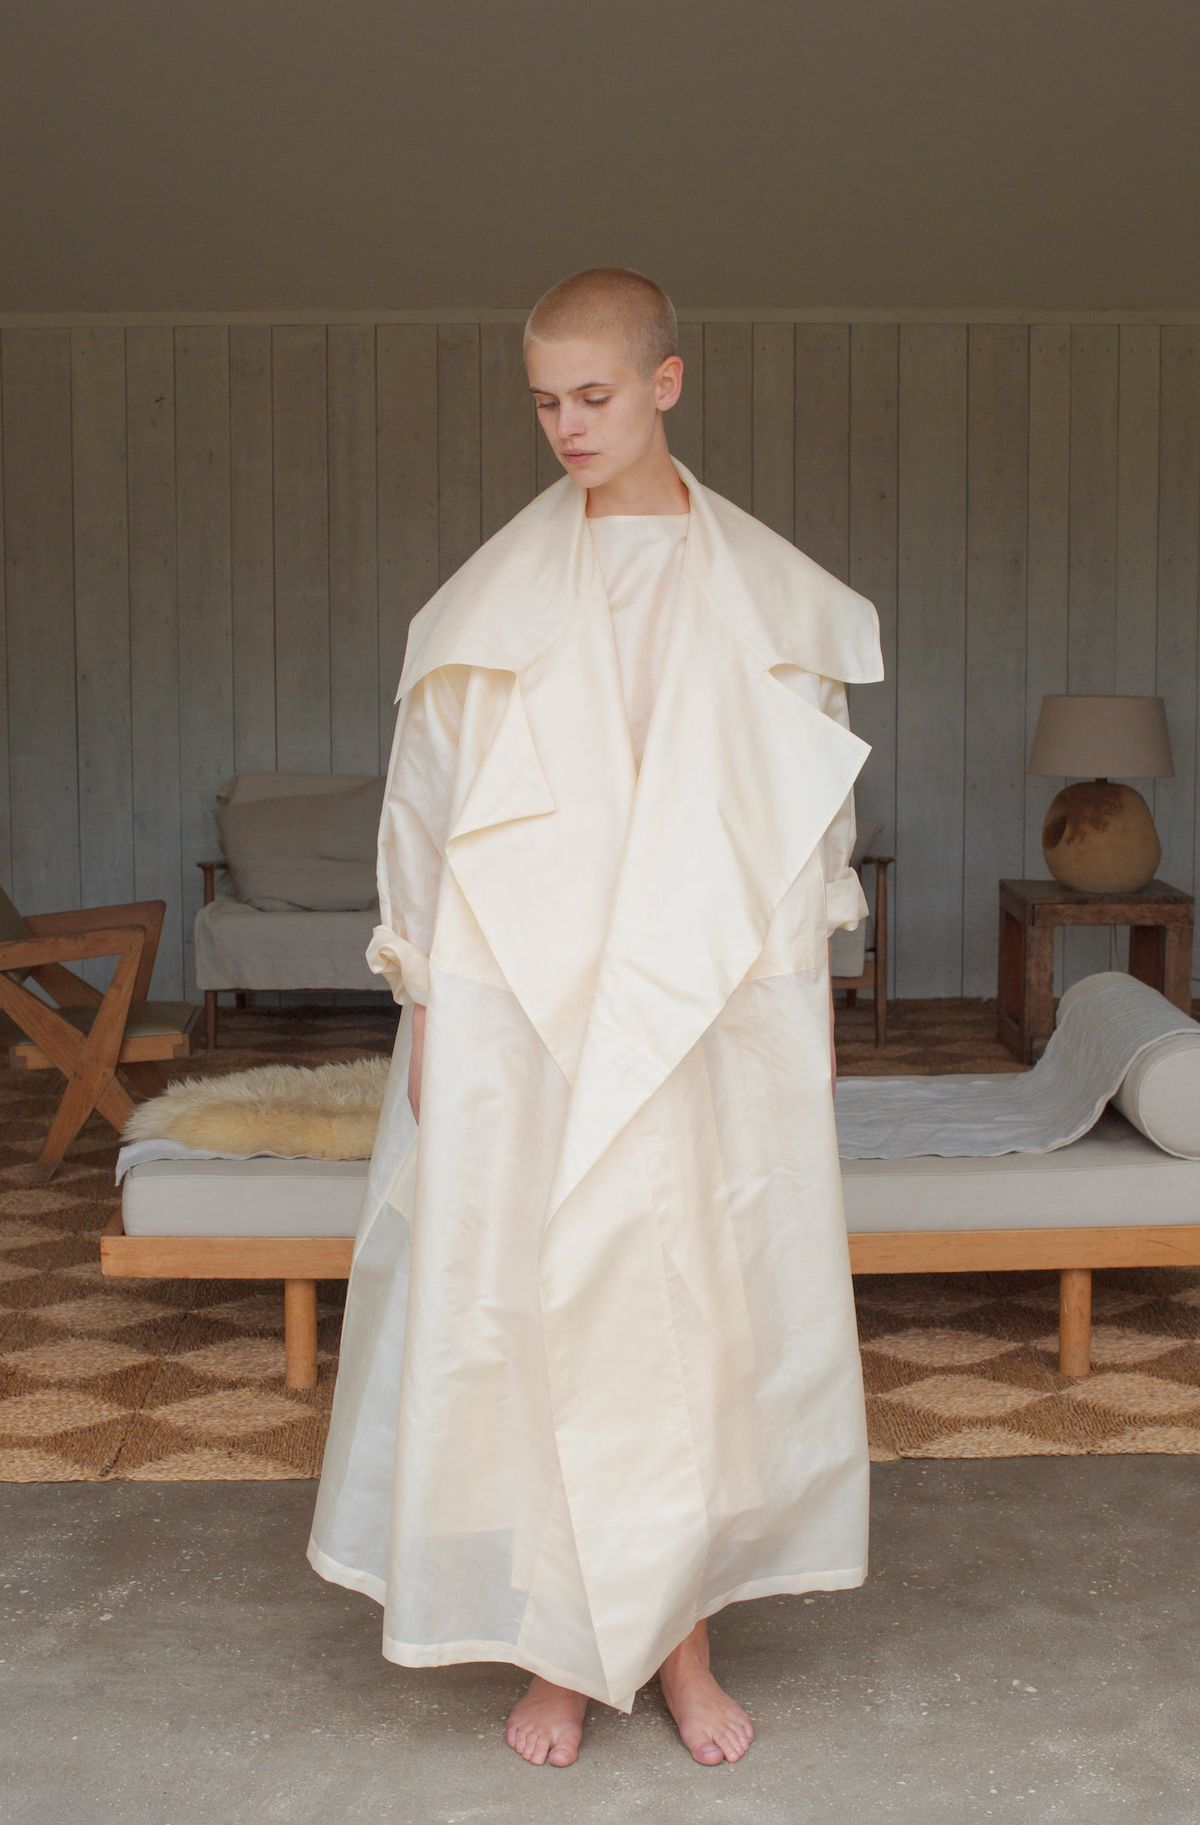 Toogood Unisexwear celebrates the craft and the toil of the workers